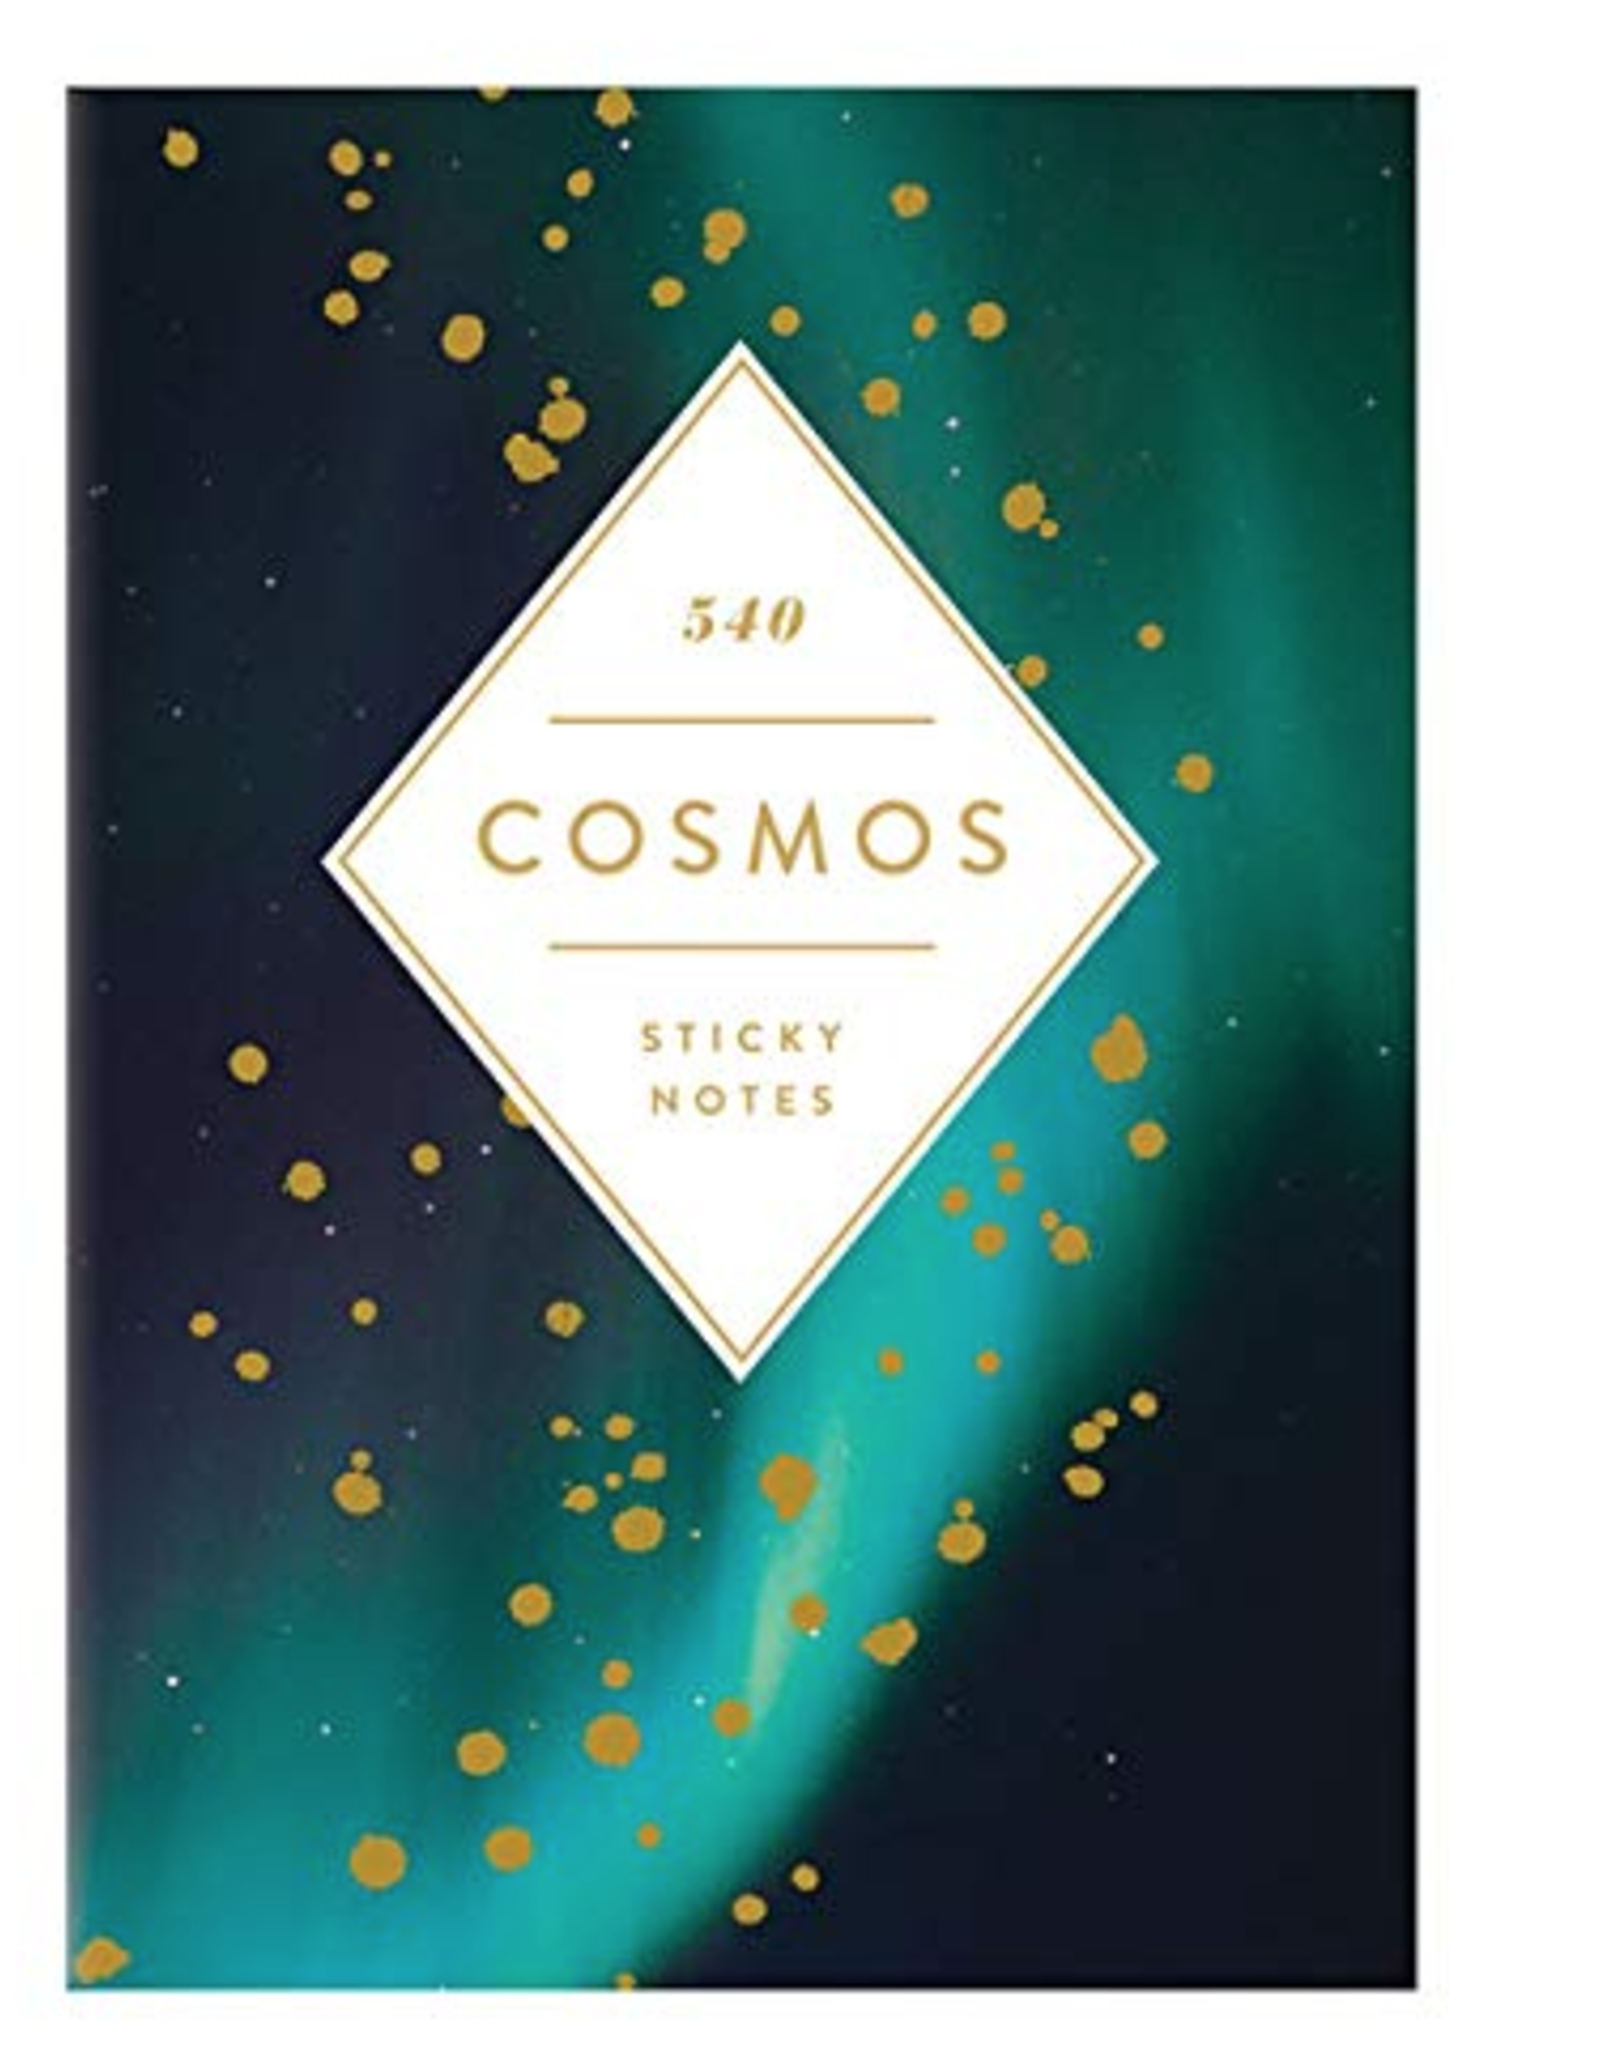 Hachette 540 Cosmos Book Of Sticky Notes